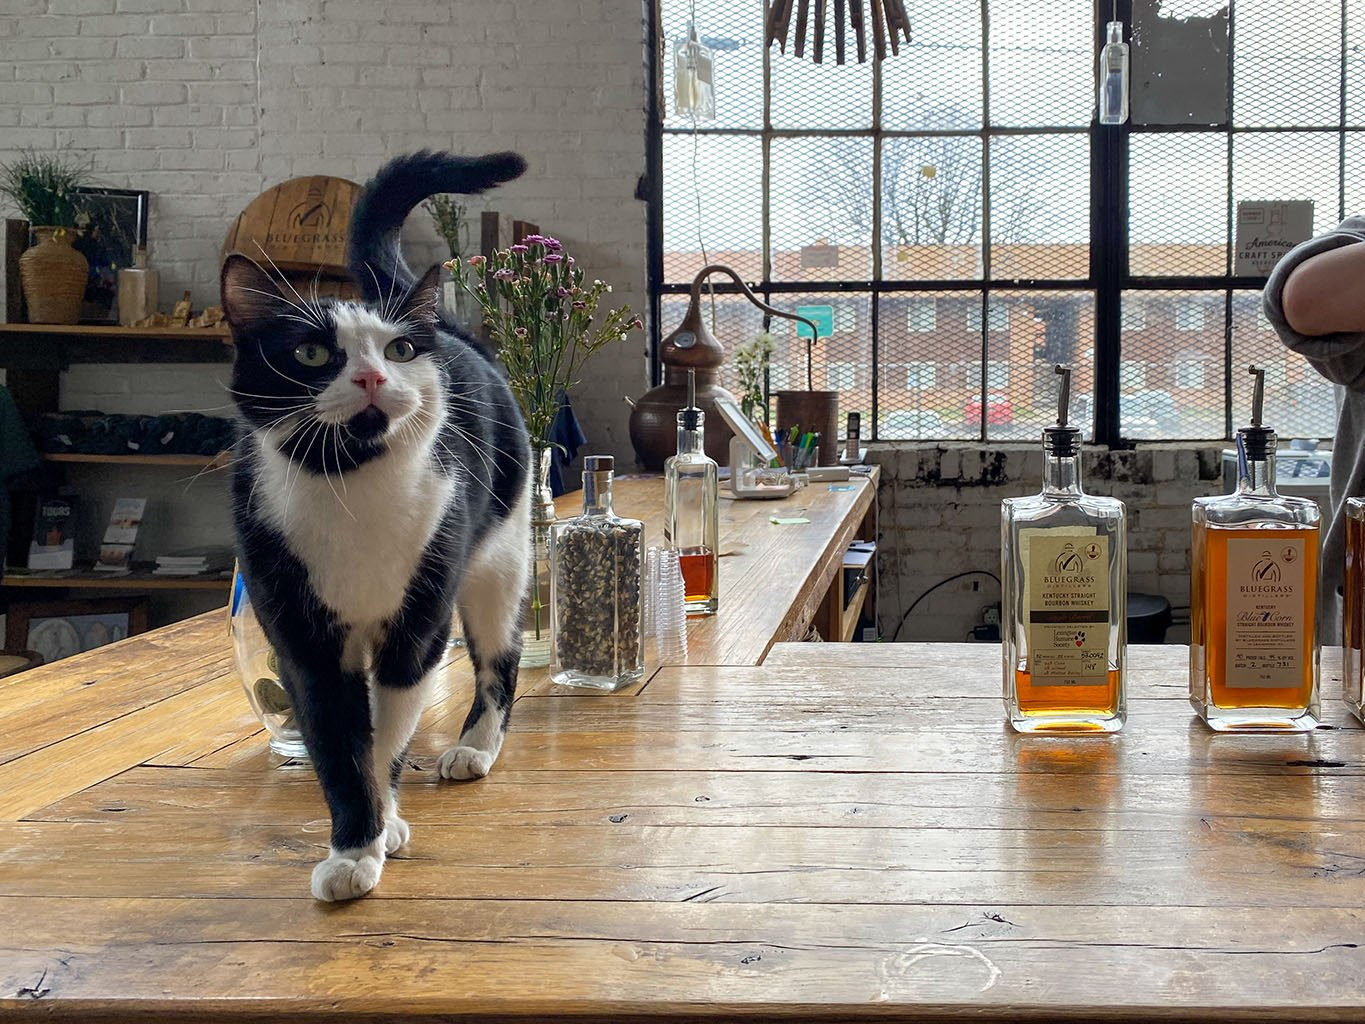 Tipsy The Cat -Bluegrass Distillers